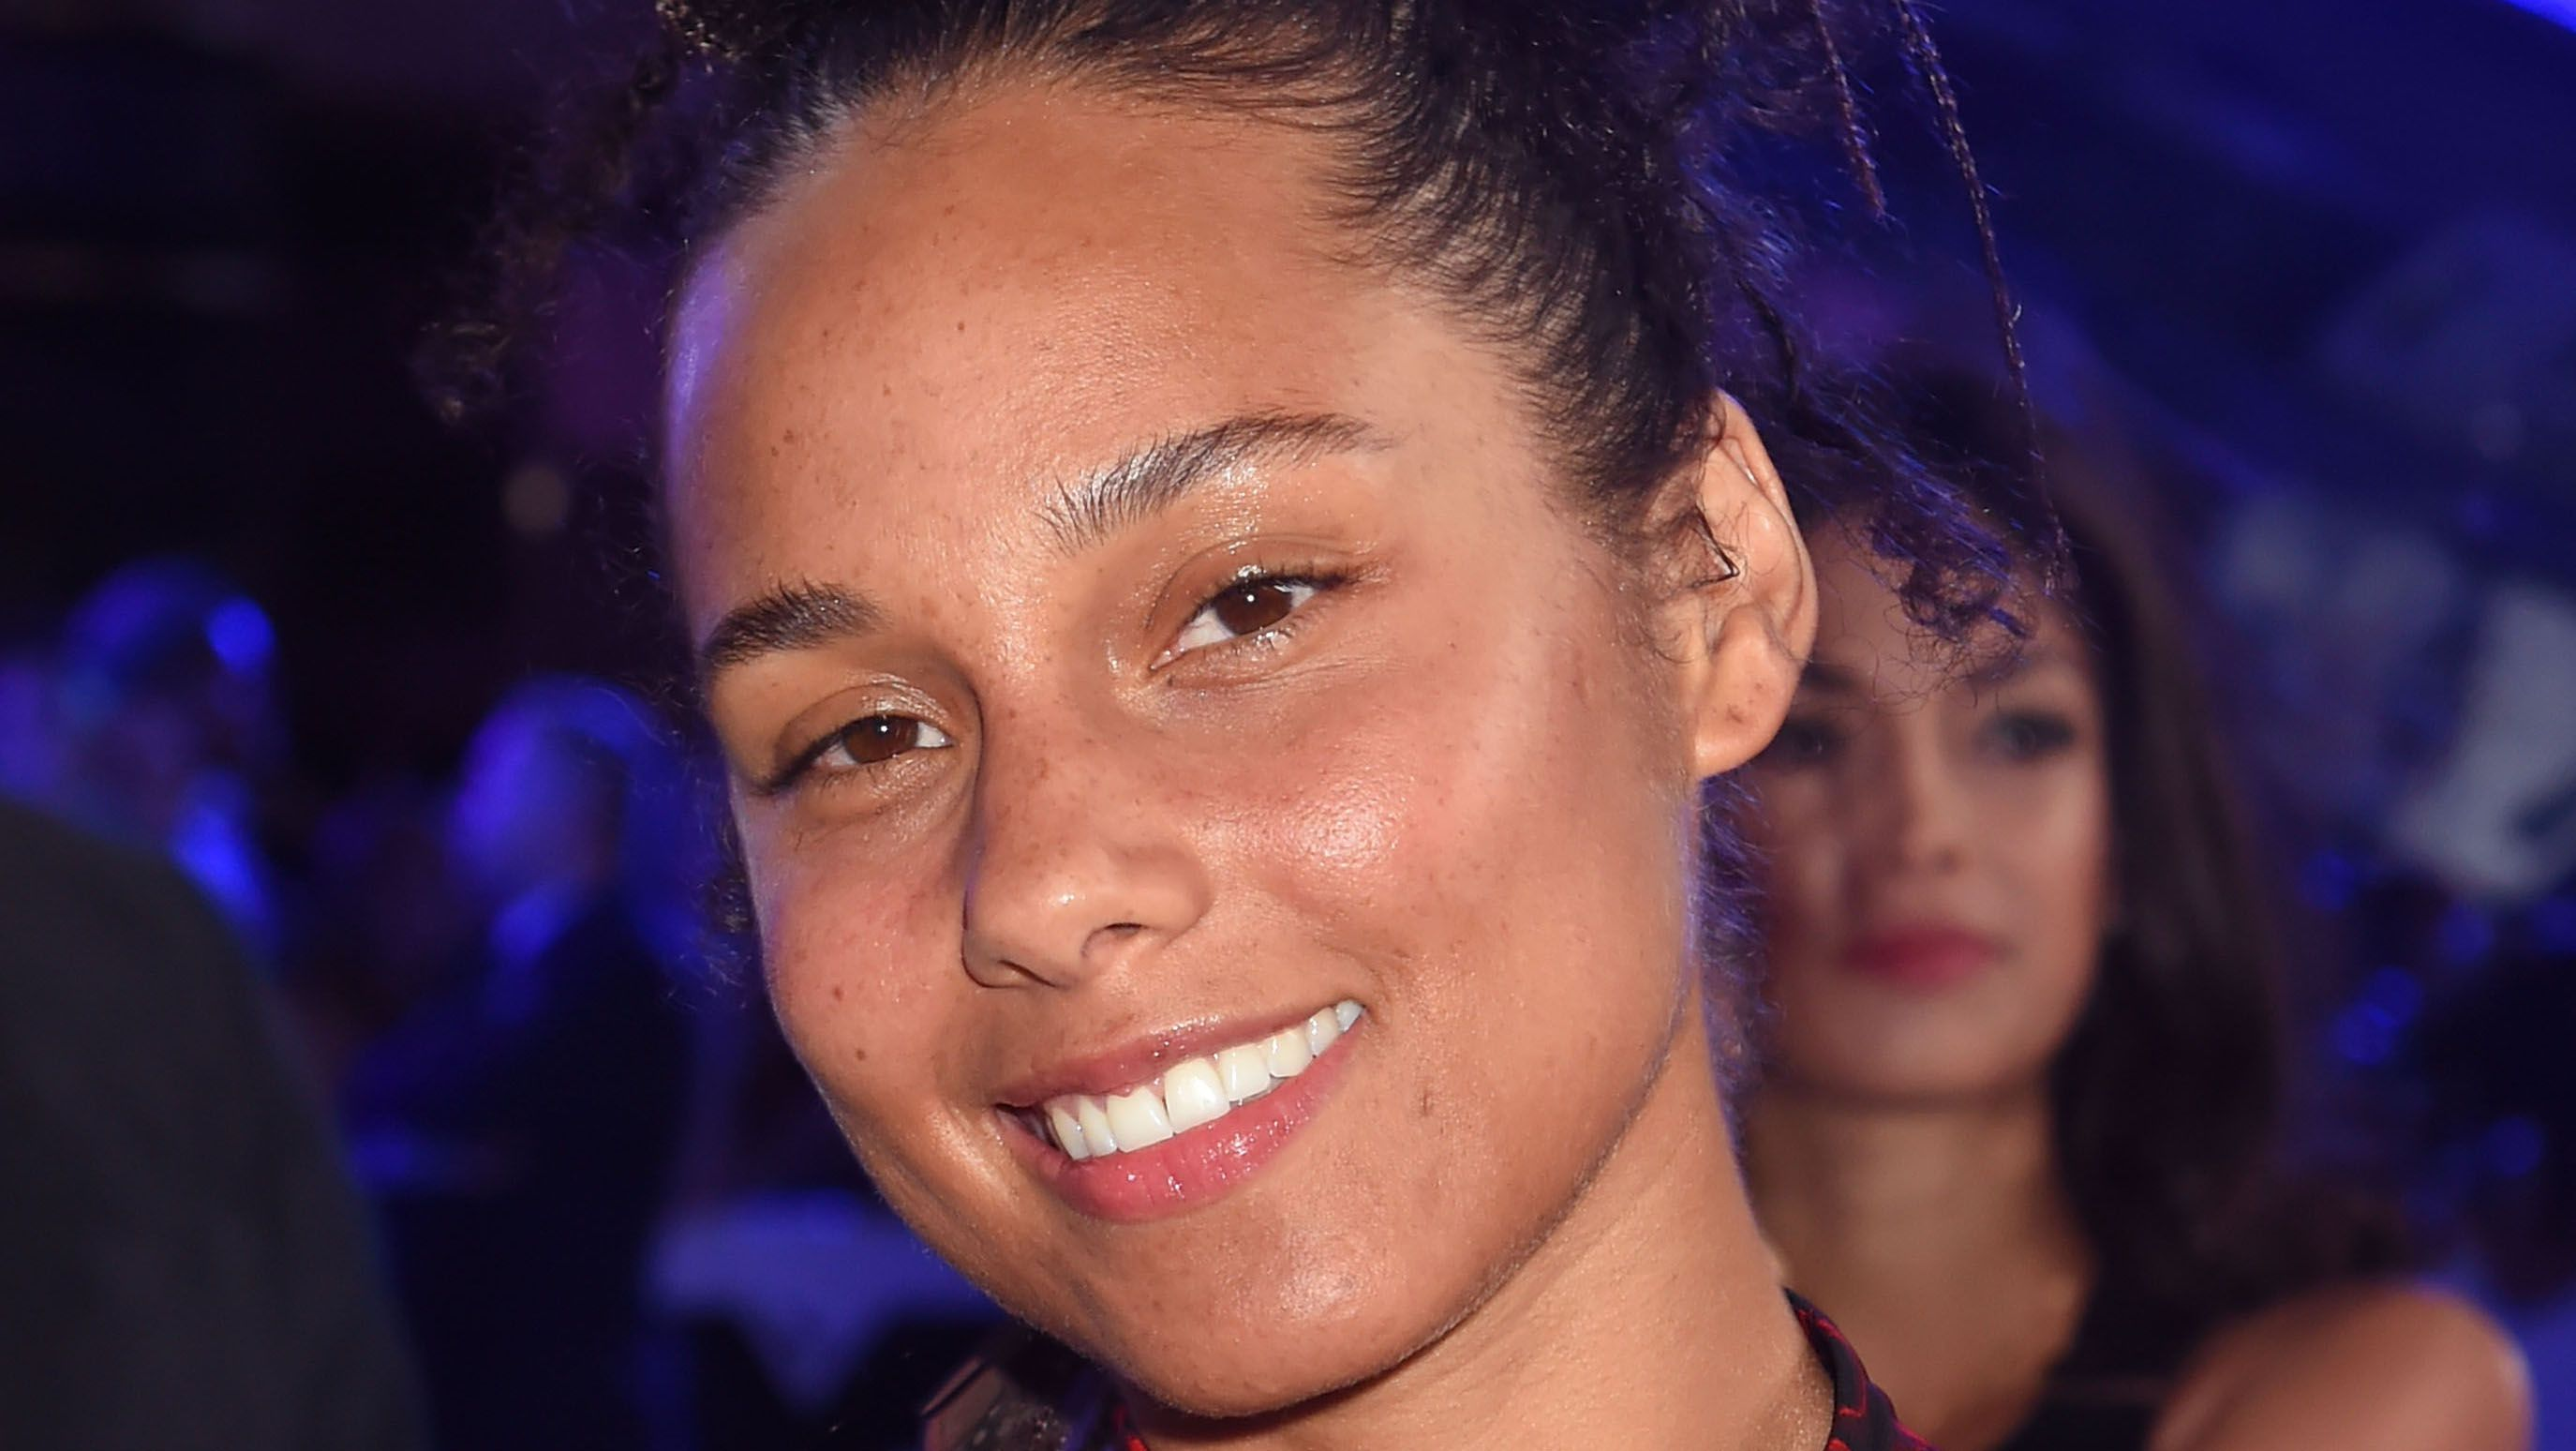 Alicia Keys goes bare-faced at the VMAs and outshines all.